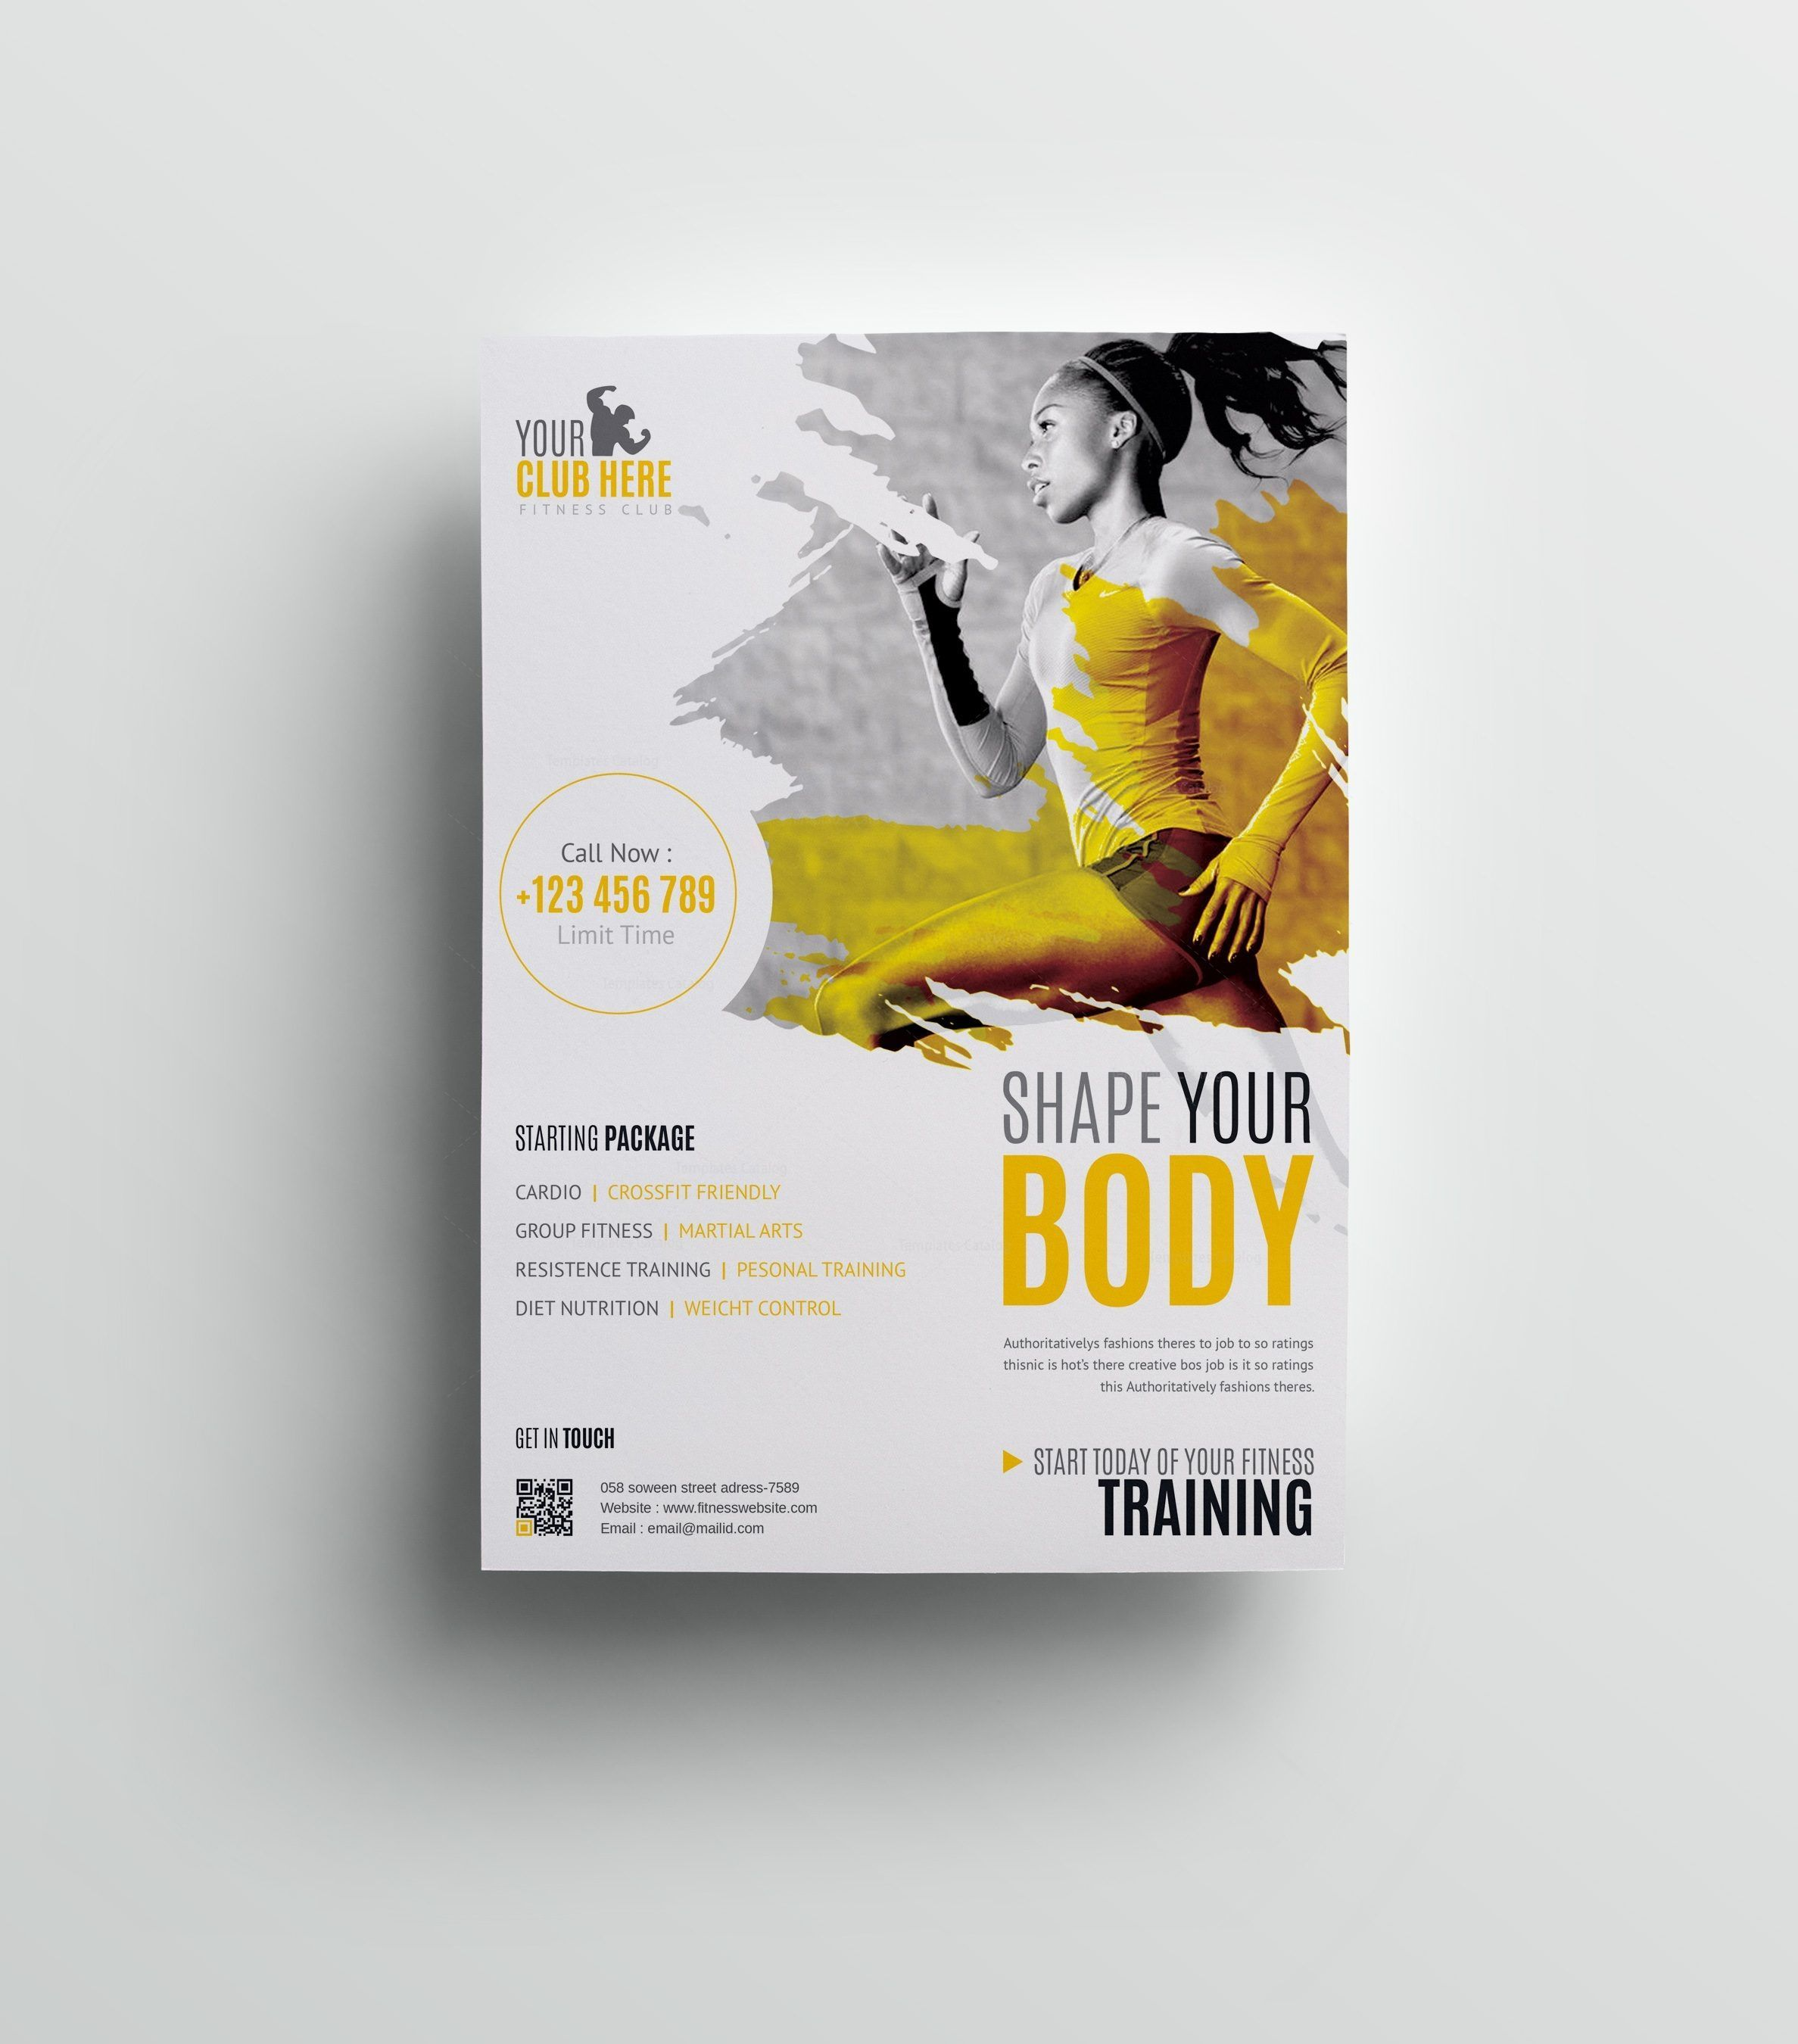 Fitness Club Professional Flyer Design Template 001511 - Template Catalog -  Fitness Club Profession...